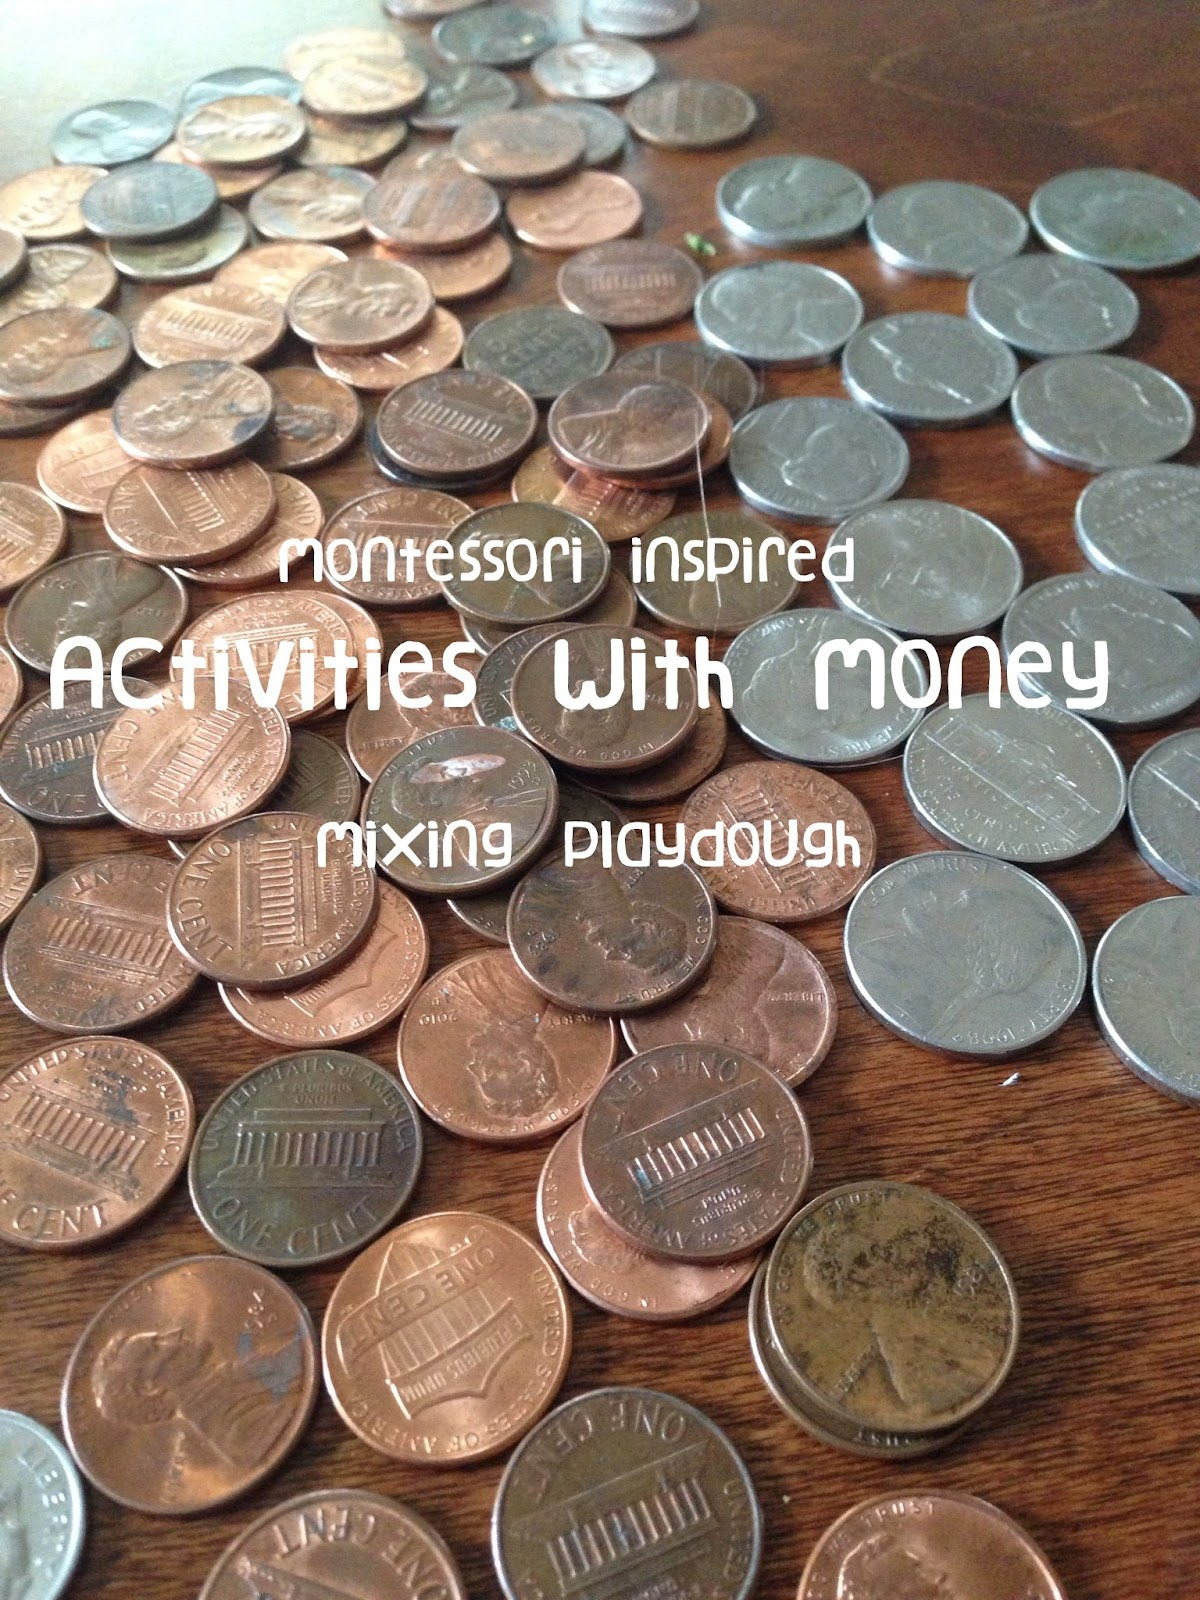 Mixing Playdough Activities With Money Coins And Dollar